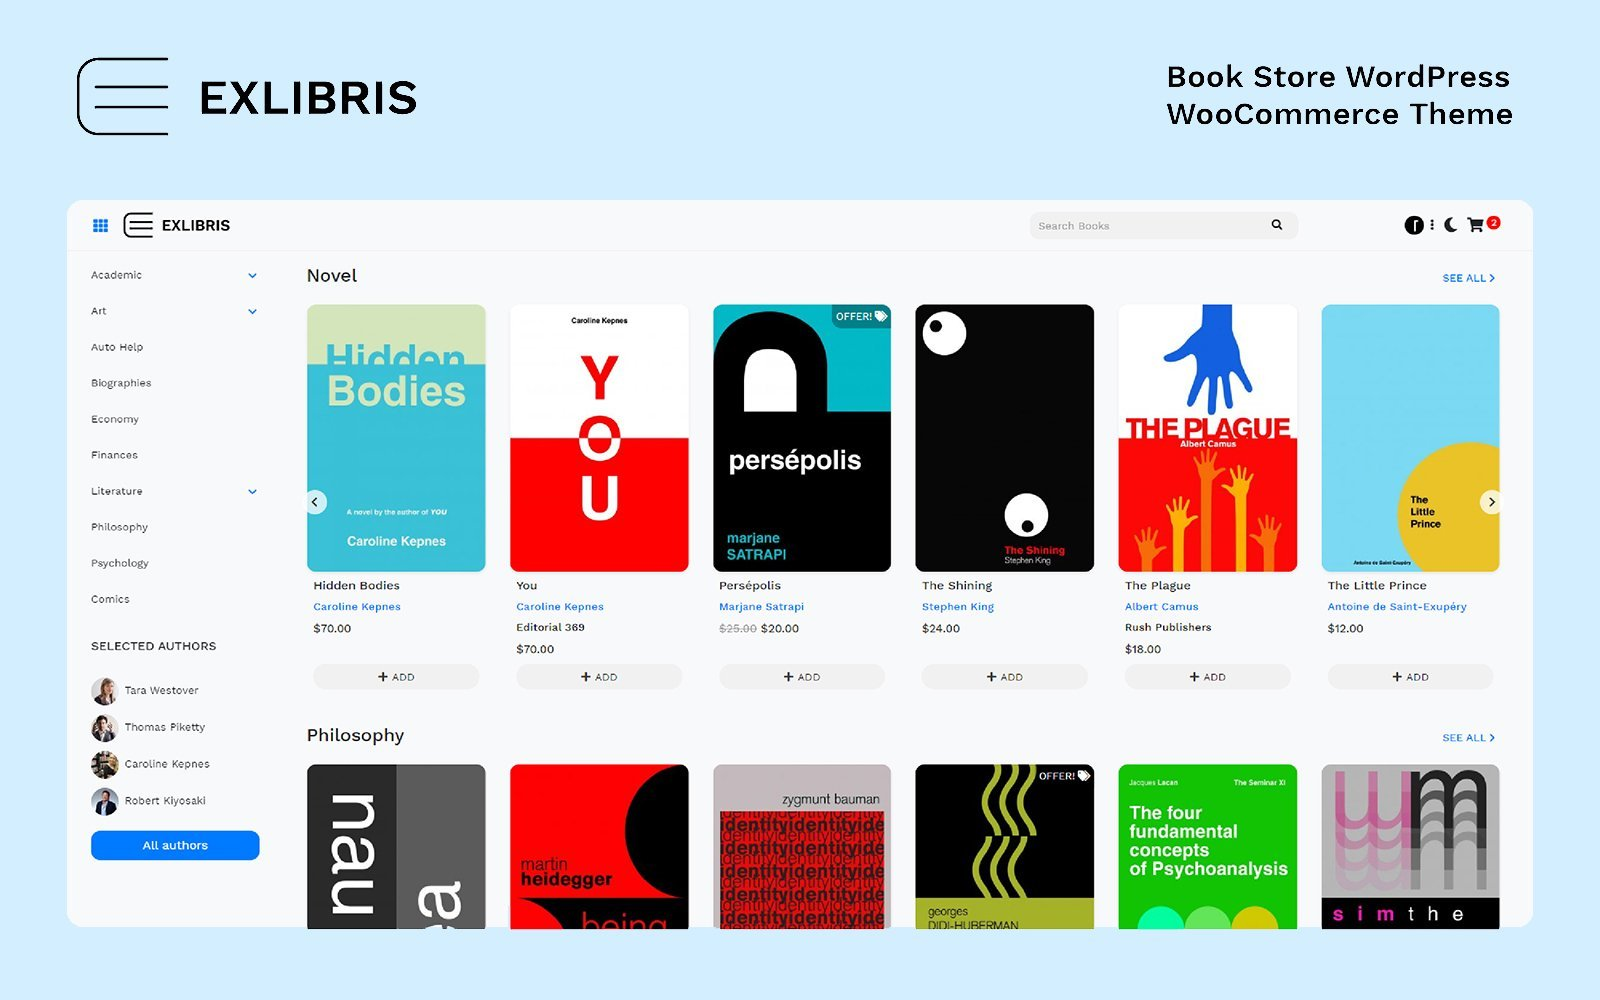 EXLIBRIS - Book Store WooCommerce Theme